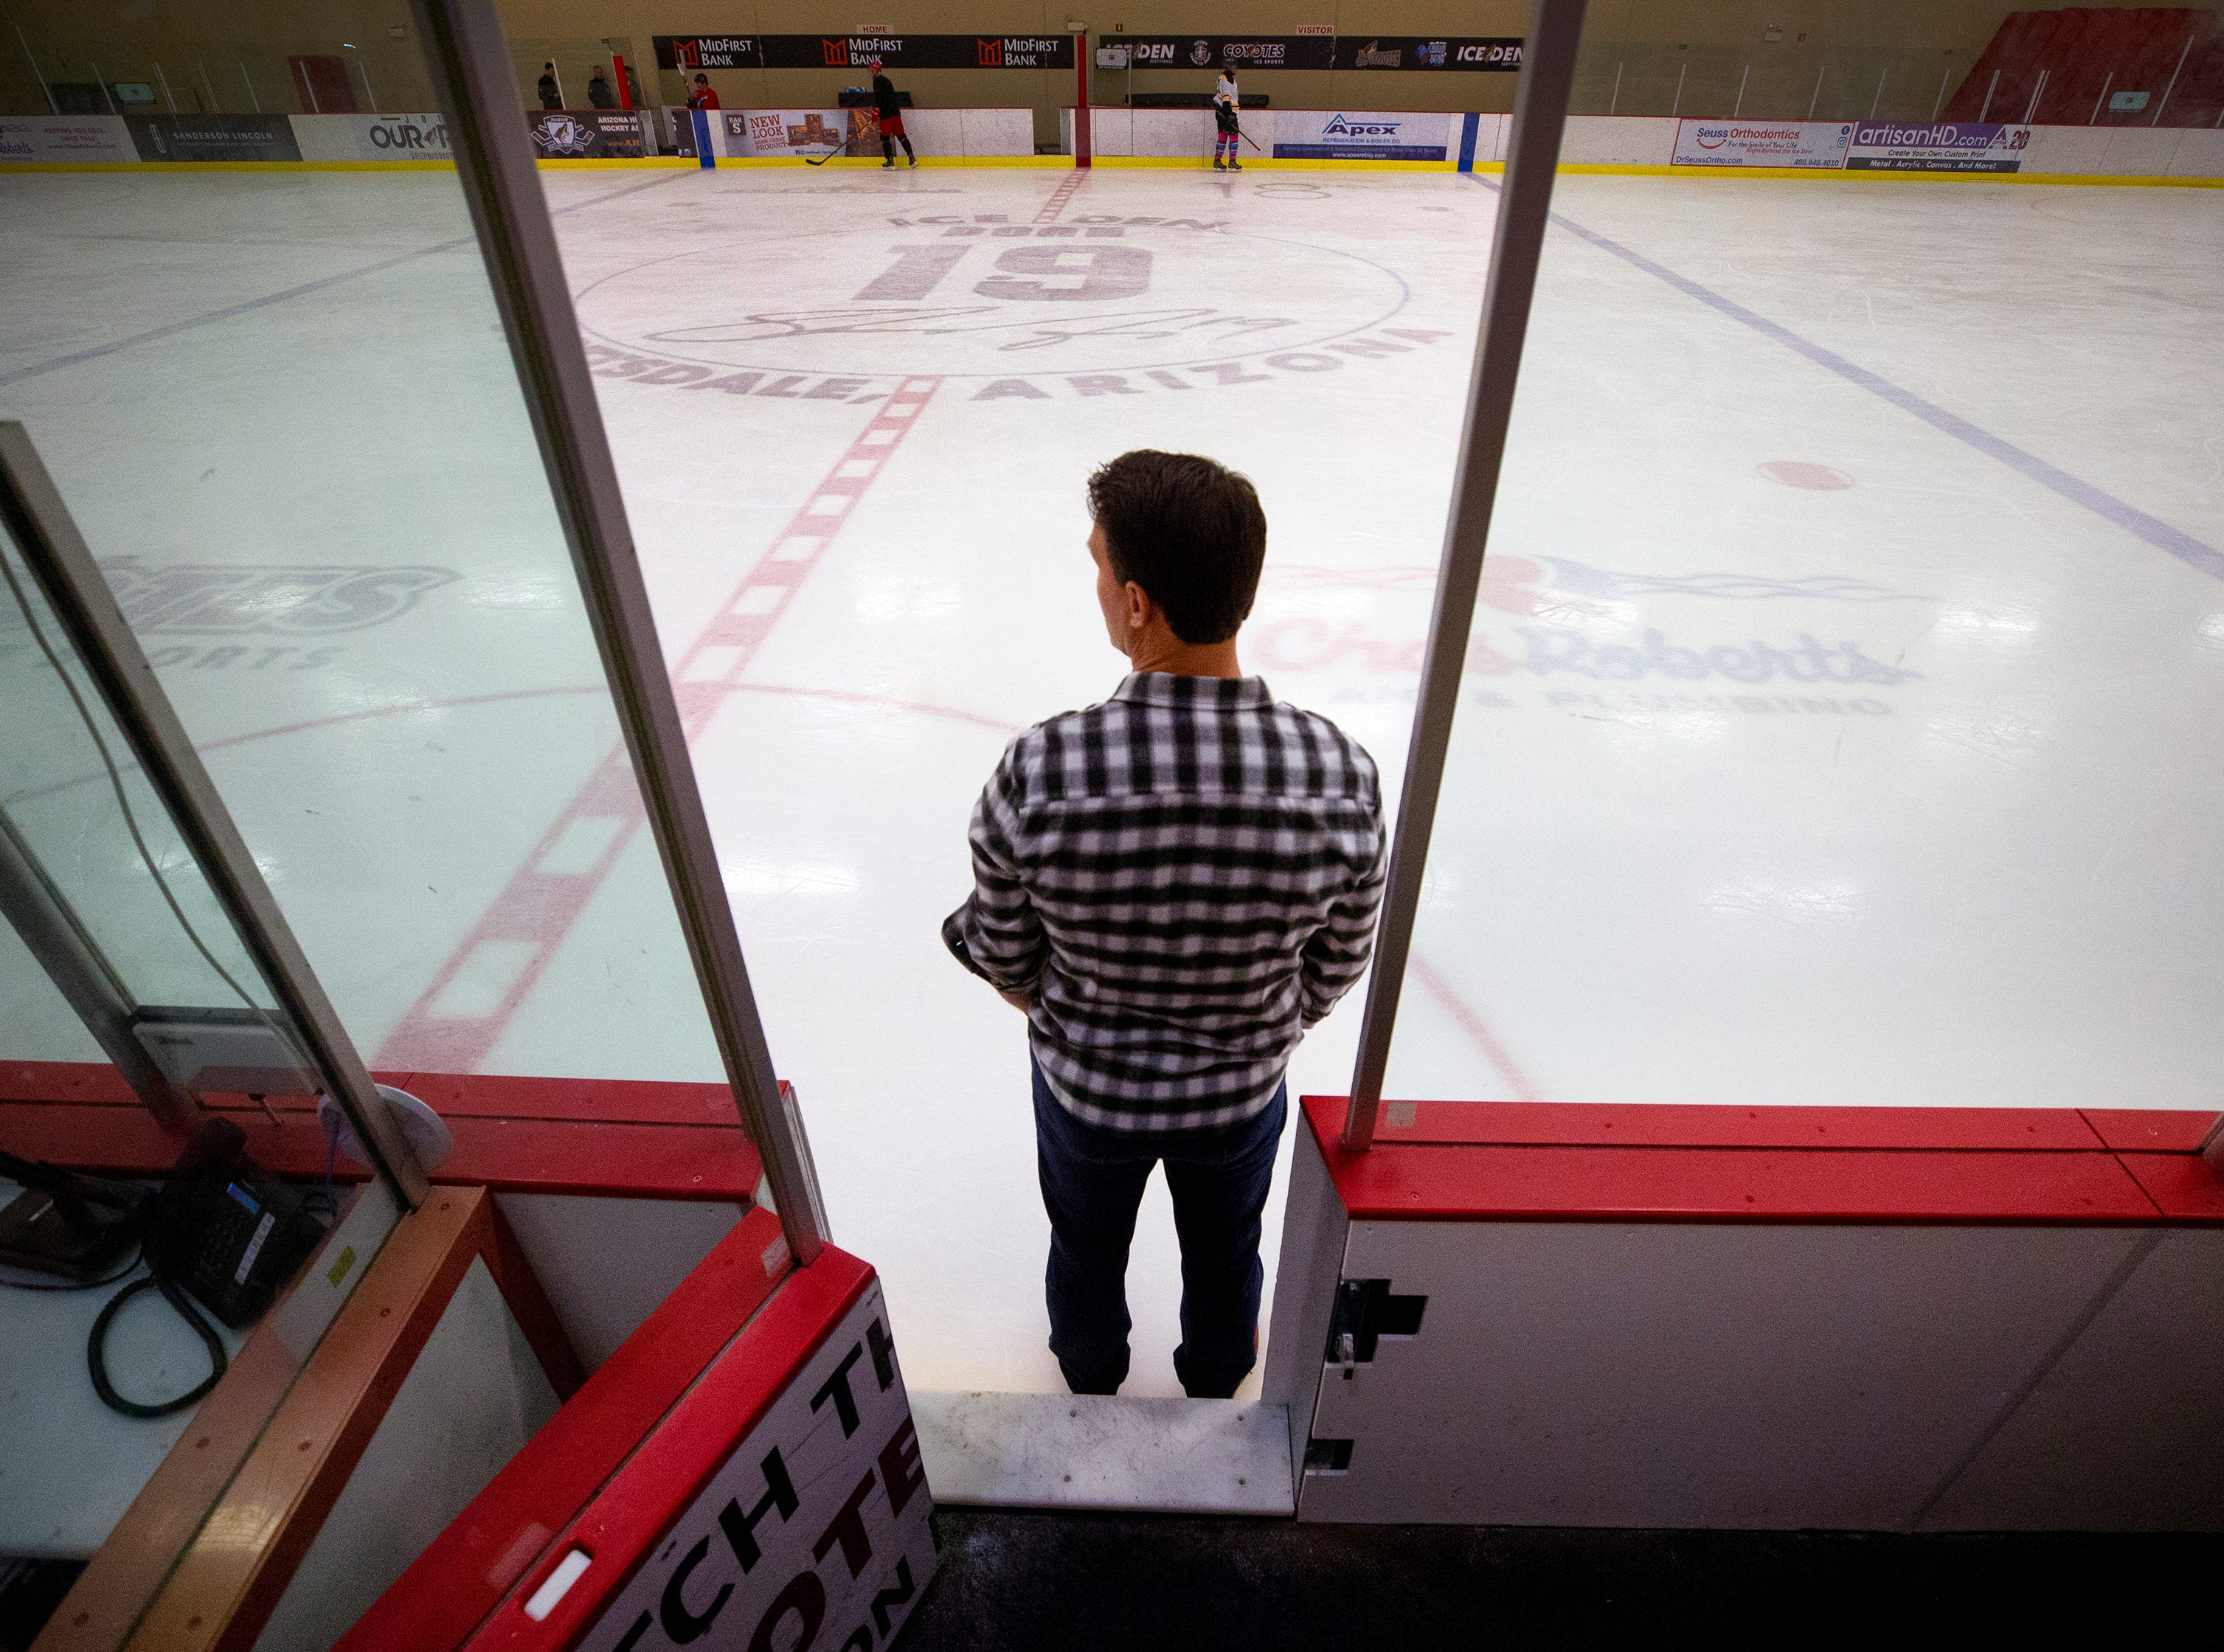 Ex-Coyotes captain Shane Doan looks onto an ice rink named after him at the IceDen Scottsdale ahead of his jersey retirement Sunday, February 24.